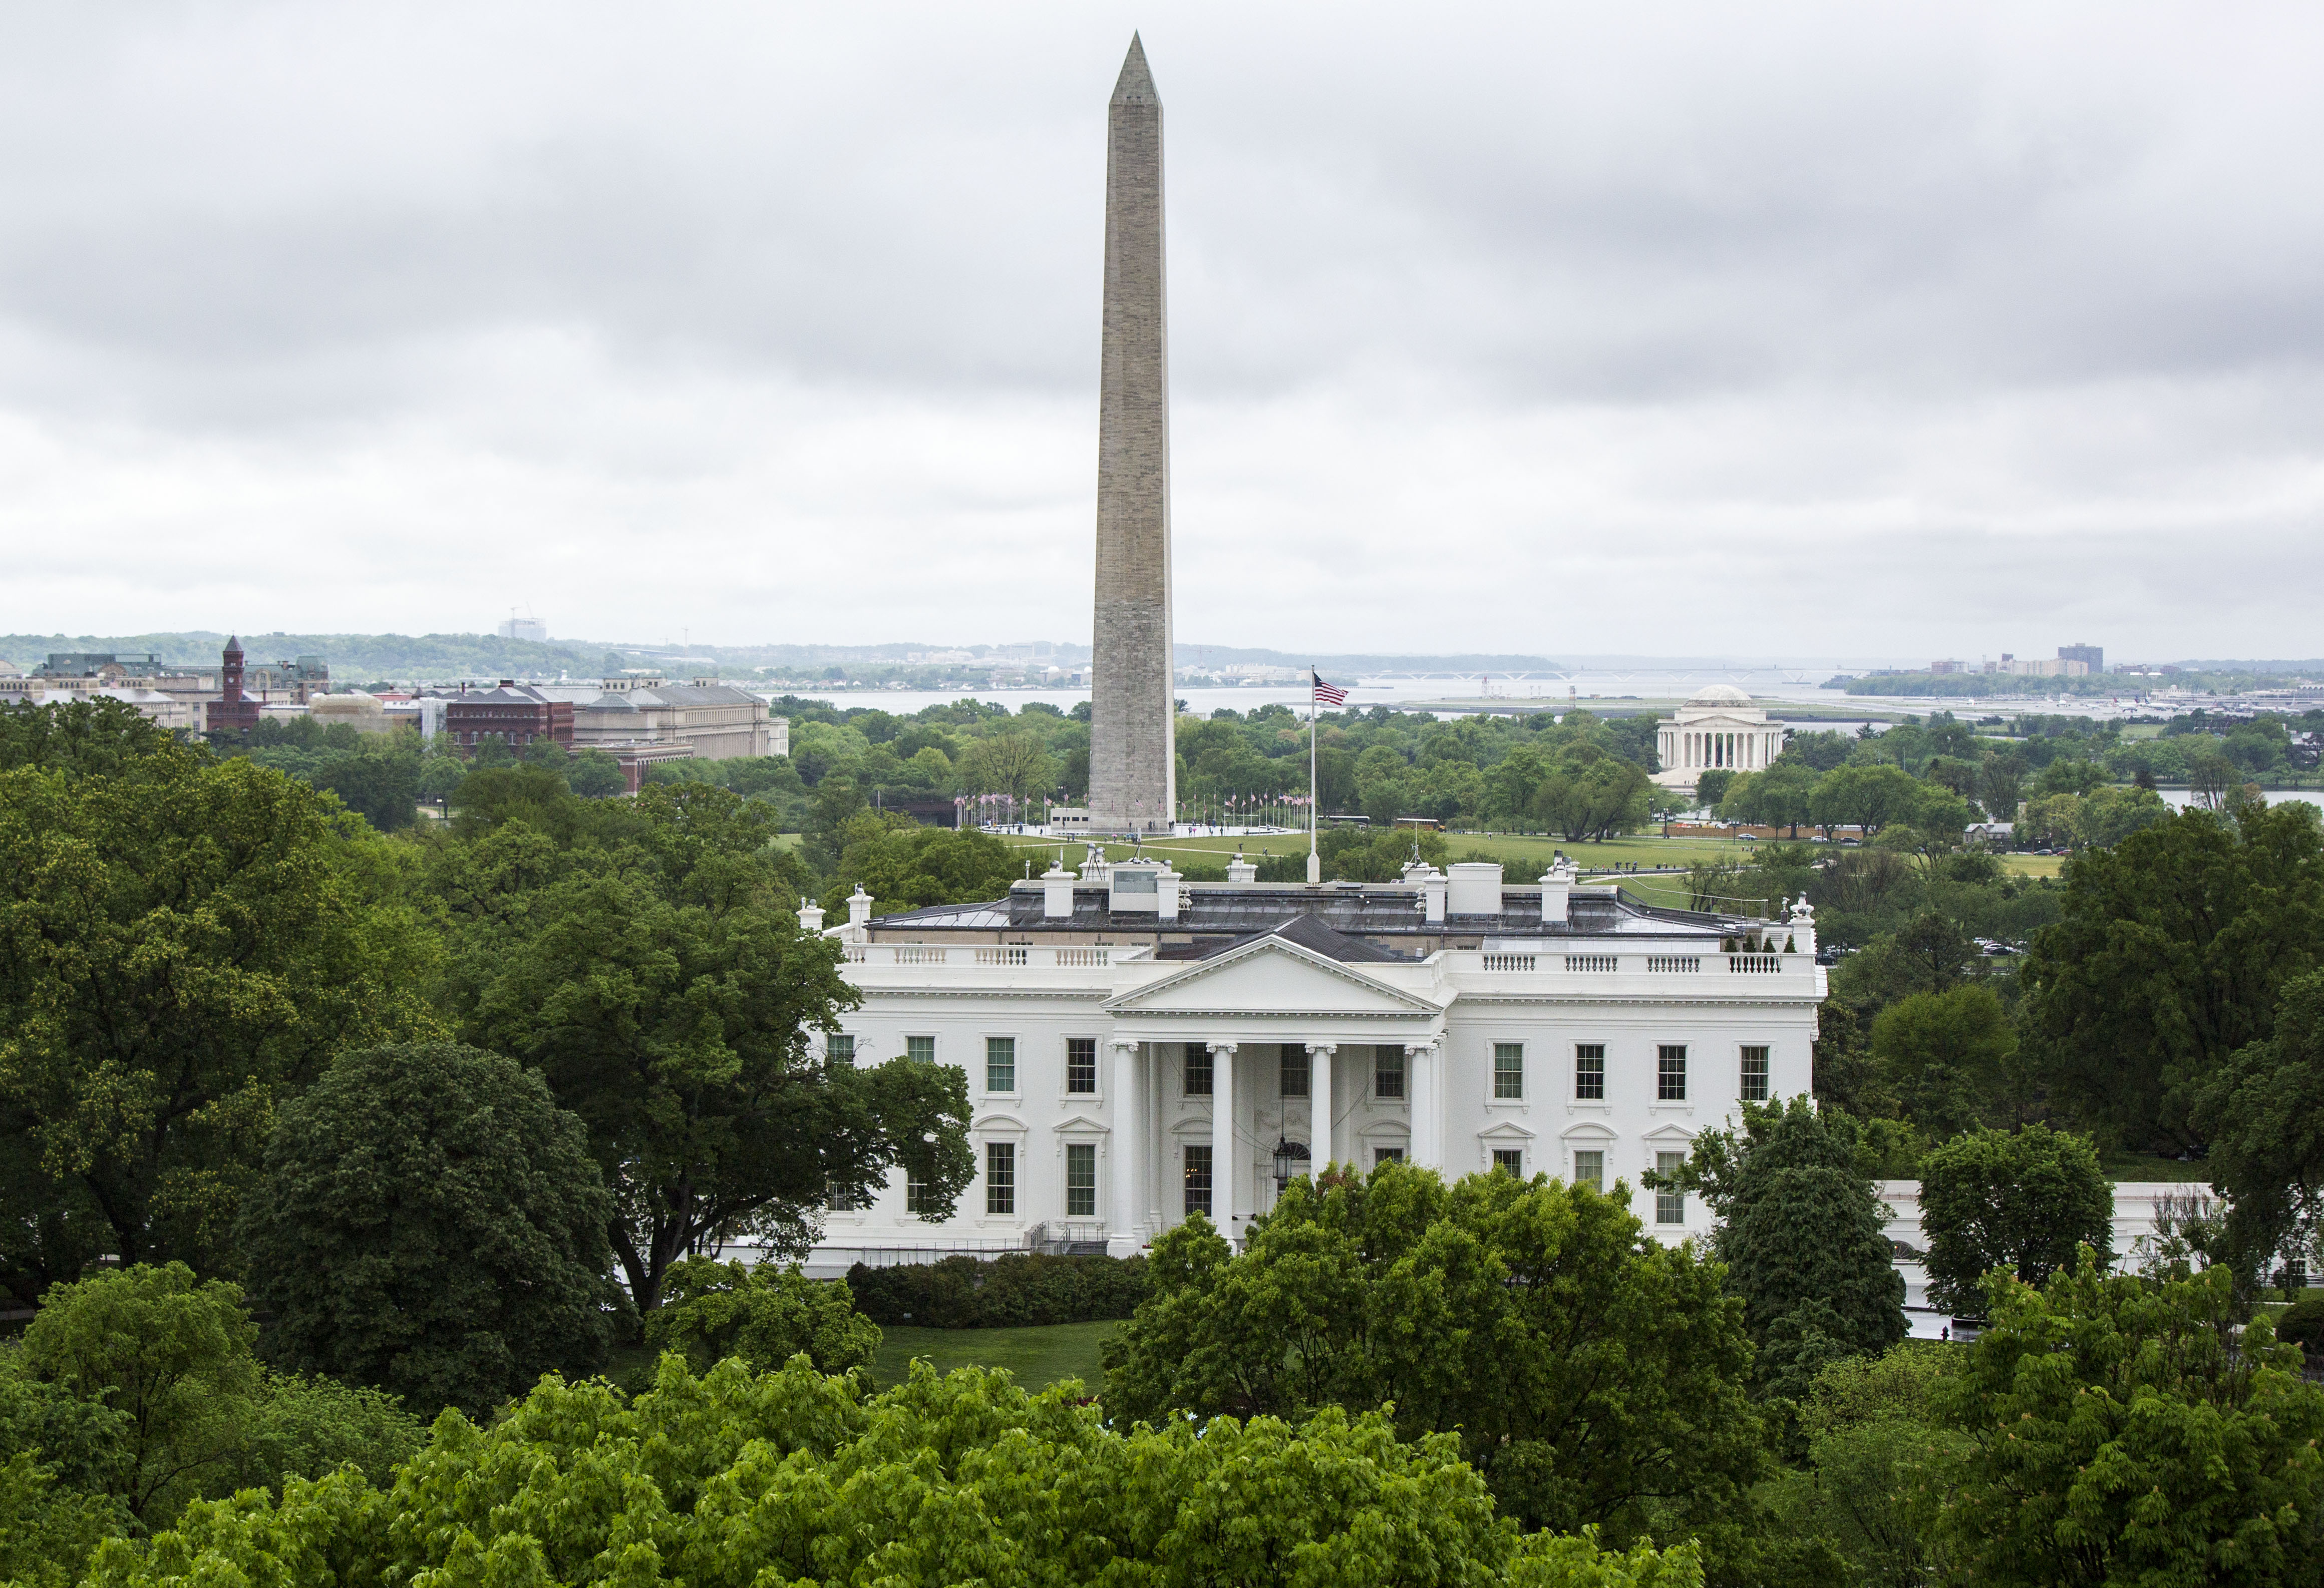 The North Lawn of the White House, the Washington Monument, and the Thomas Jefferson Memorial are seen from the roof of the Hay Adams Hotel, on May 1.